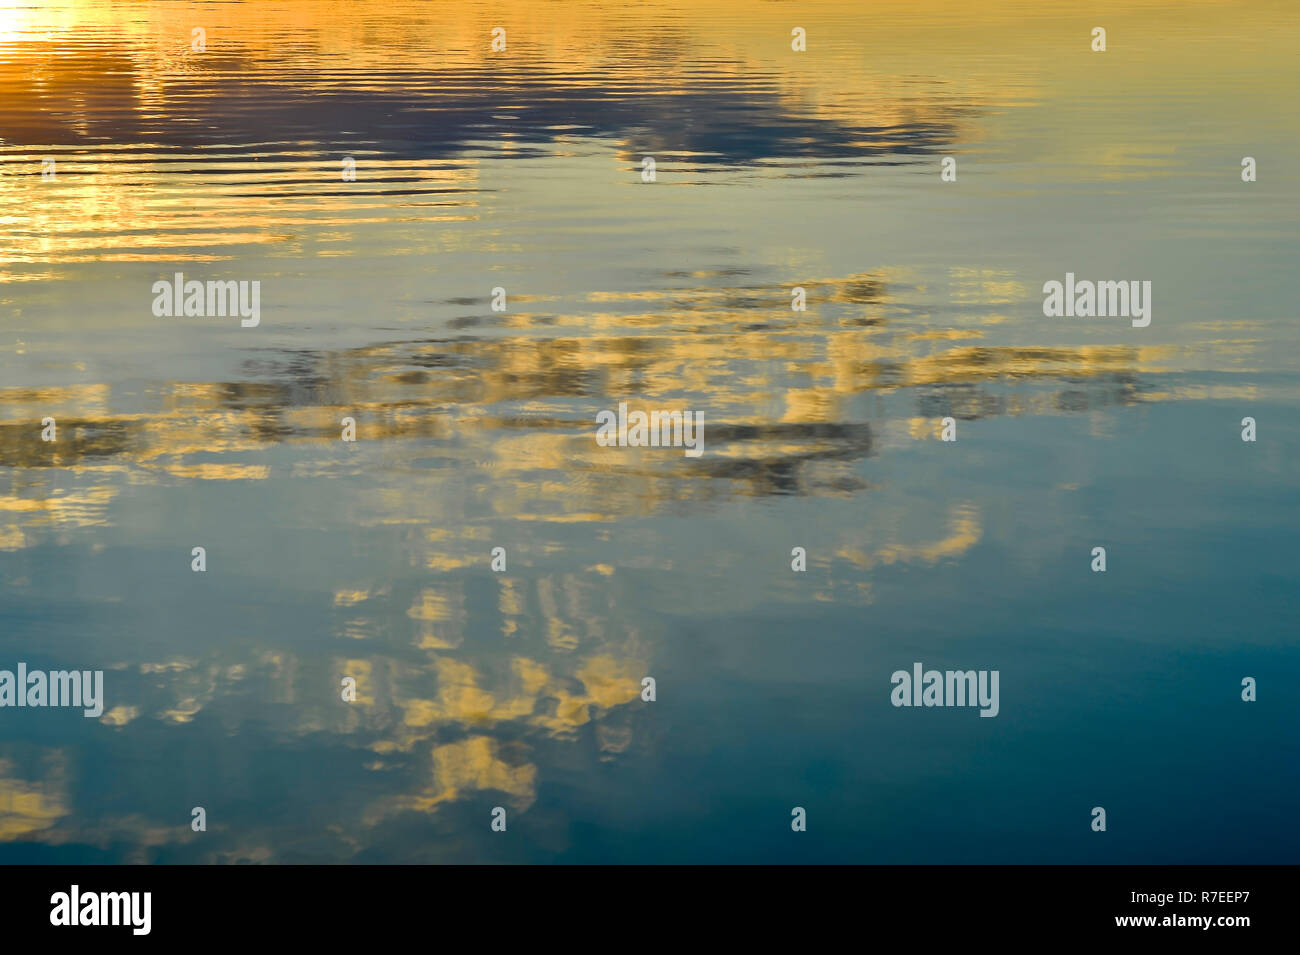 Blurred, background the surface of the water with the reflection of the evening sky. - Stock Image